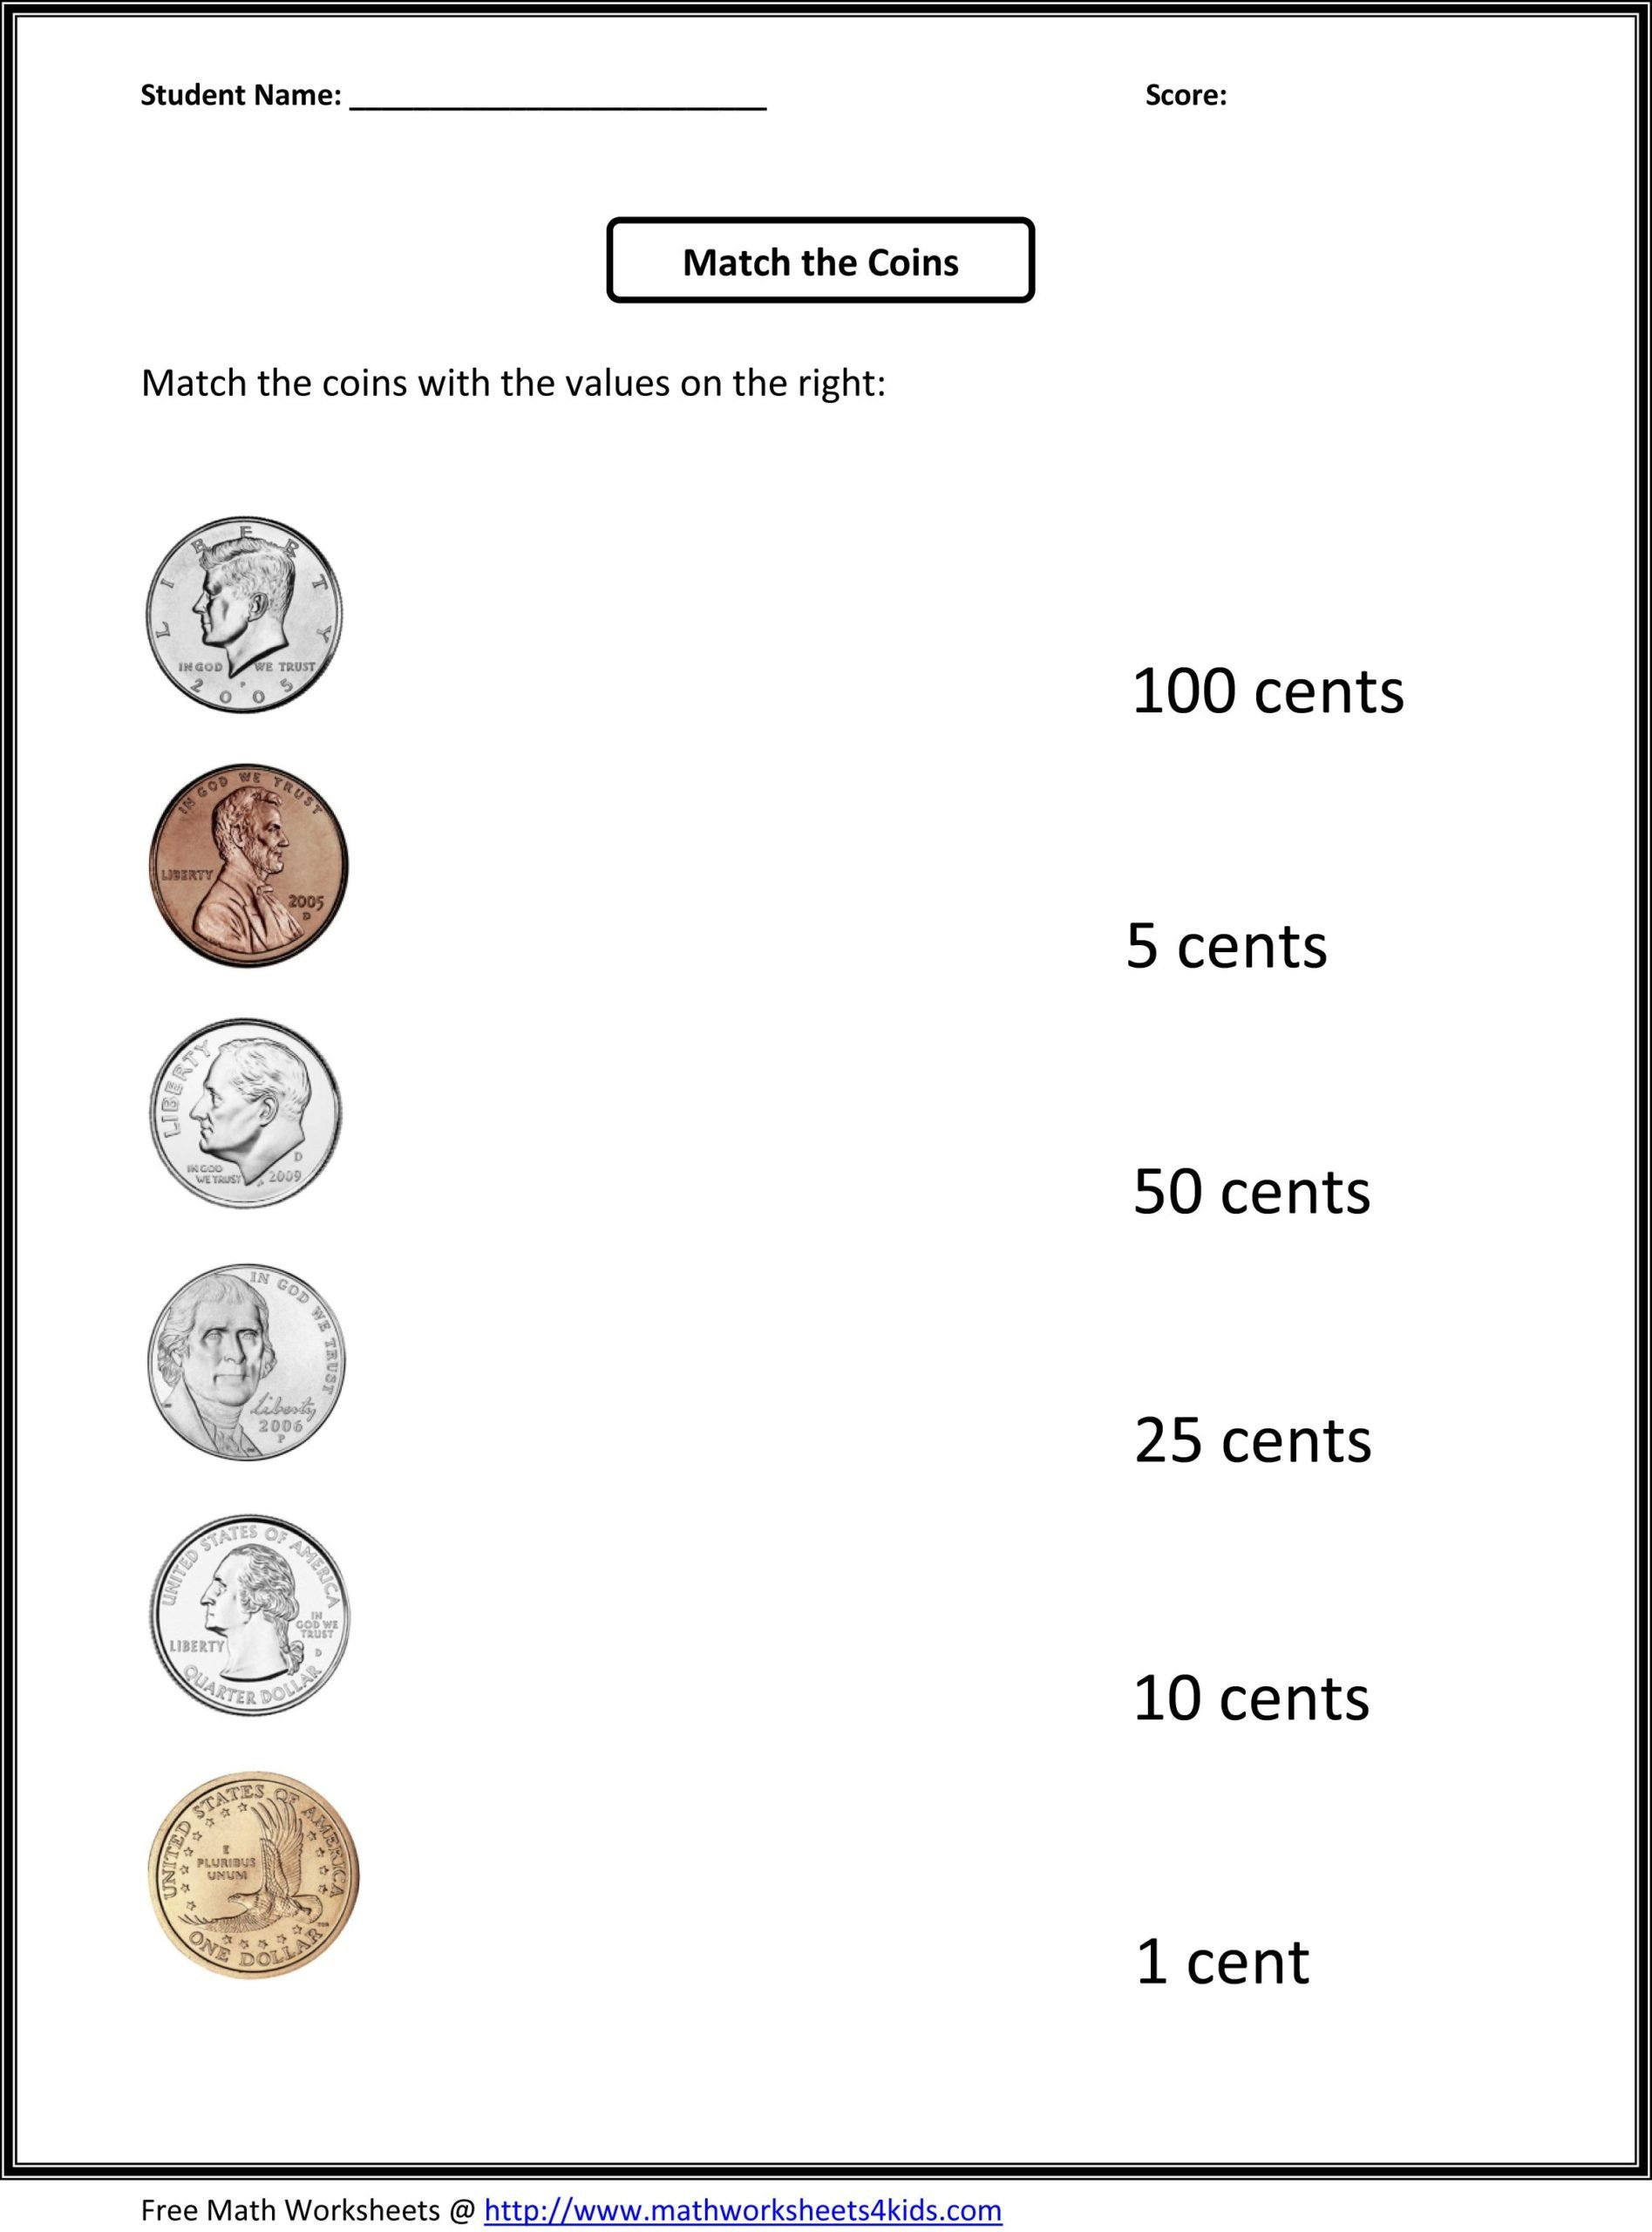 Counting Coins Worksheets First Grade Free 1st Grade Worksheets Match the Coins and Its Values